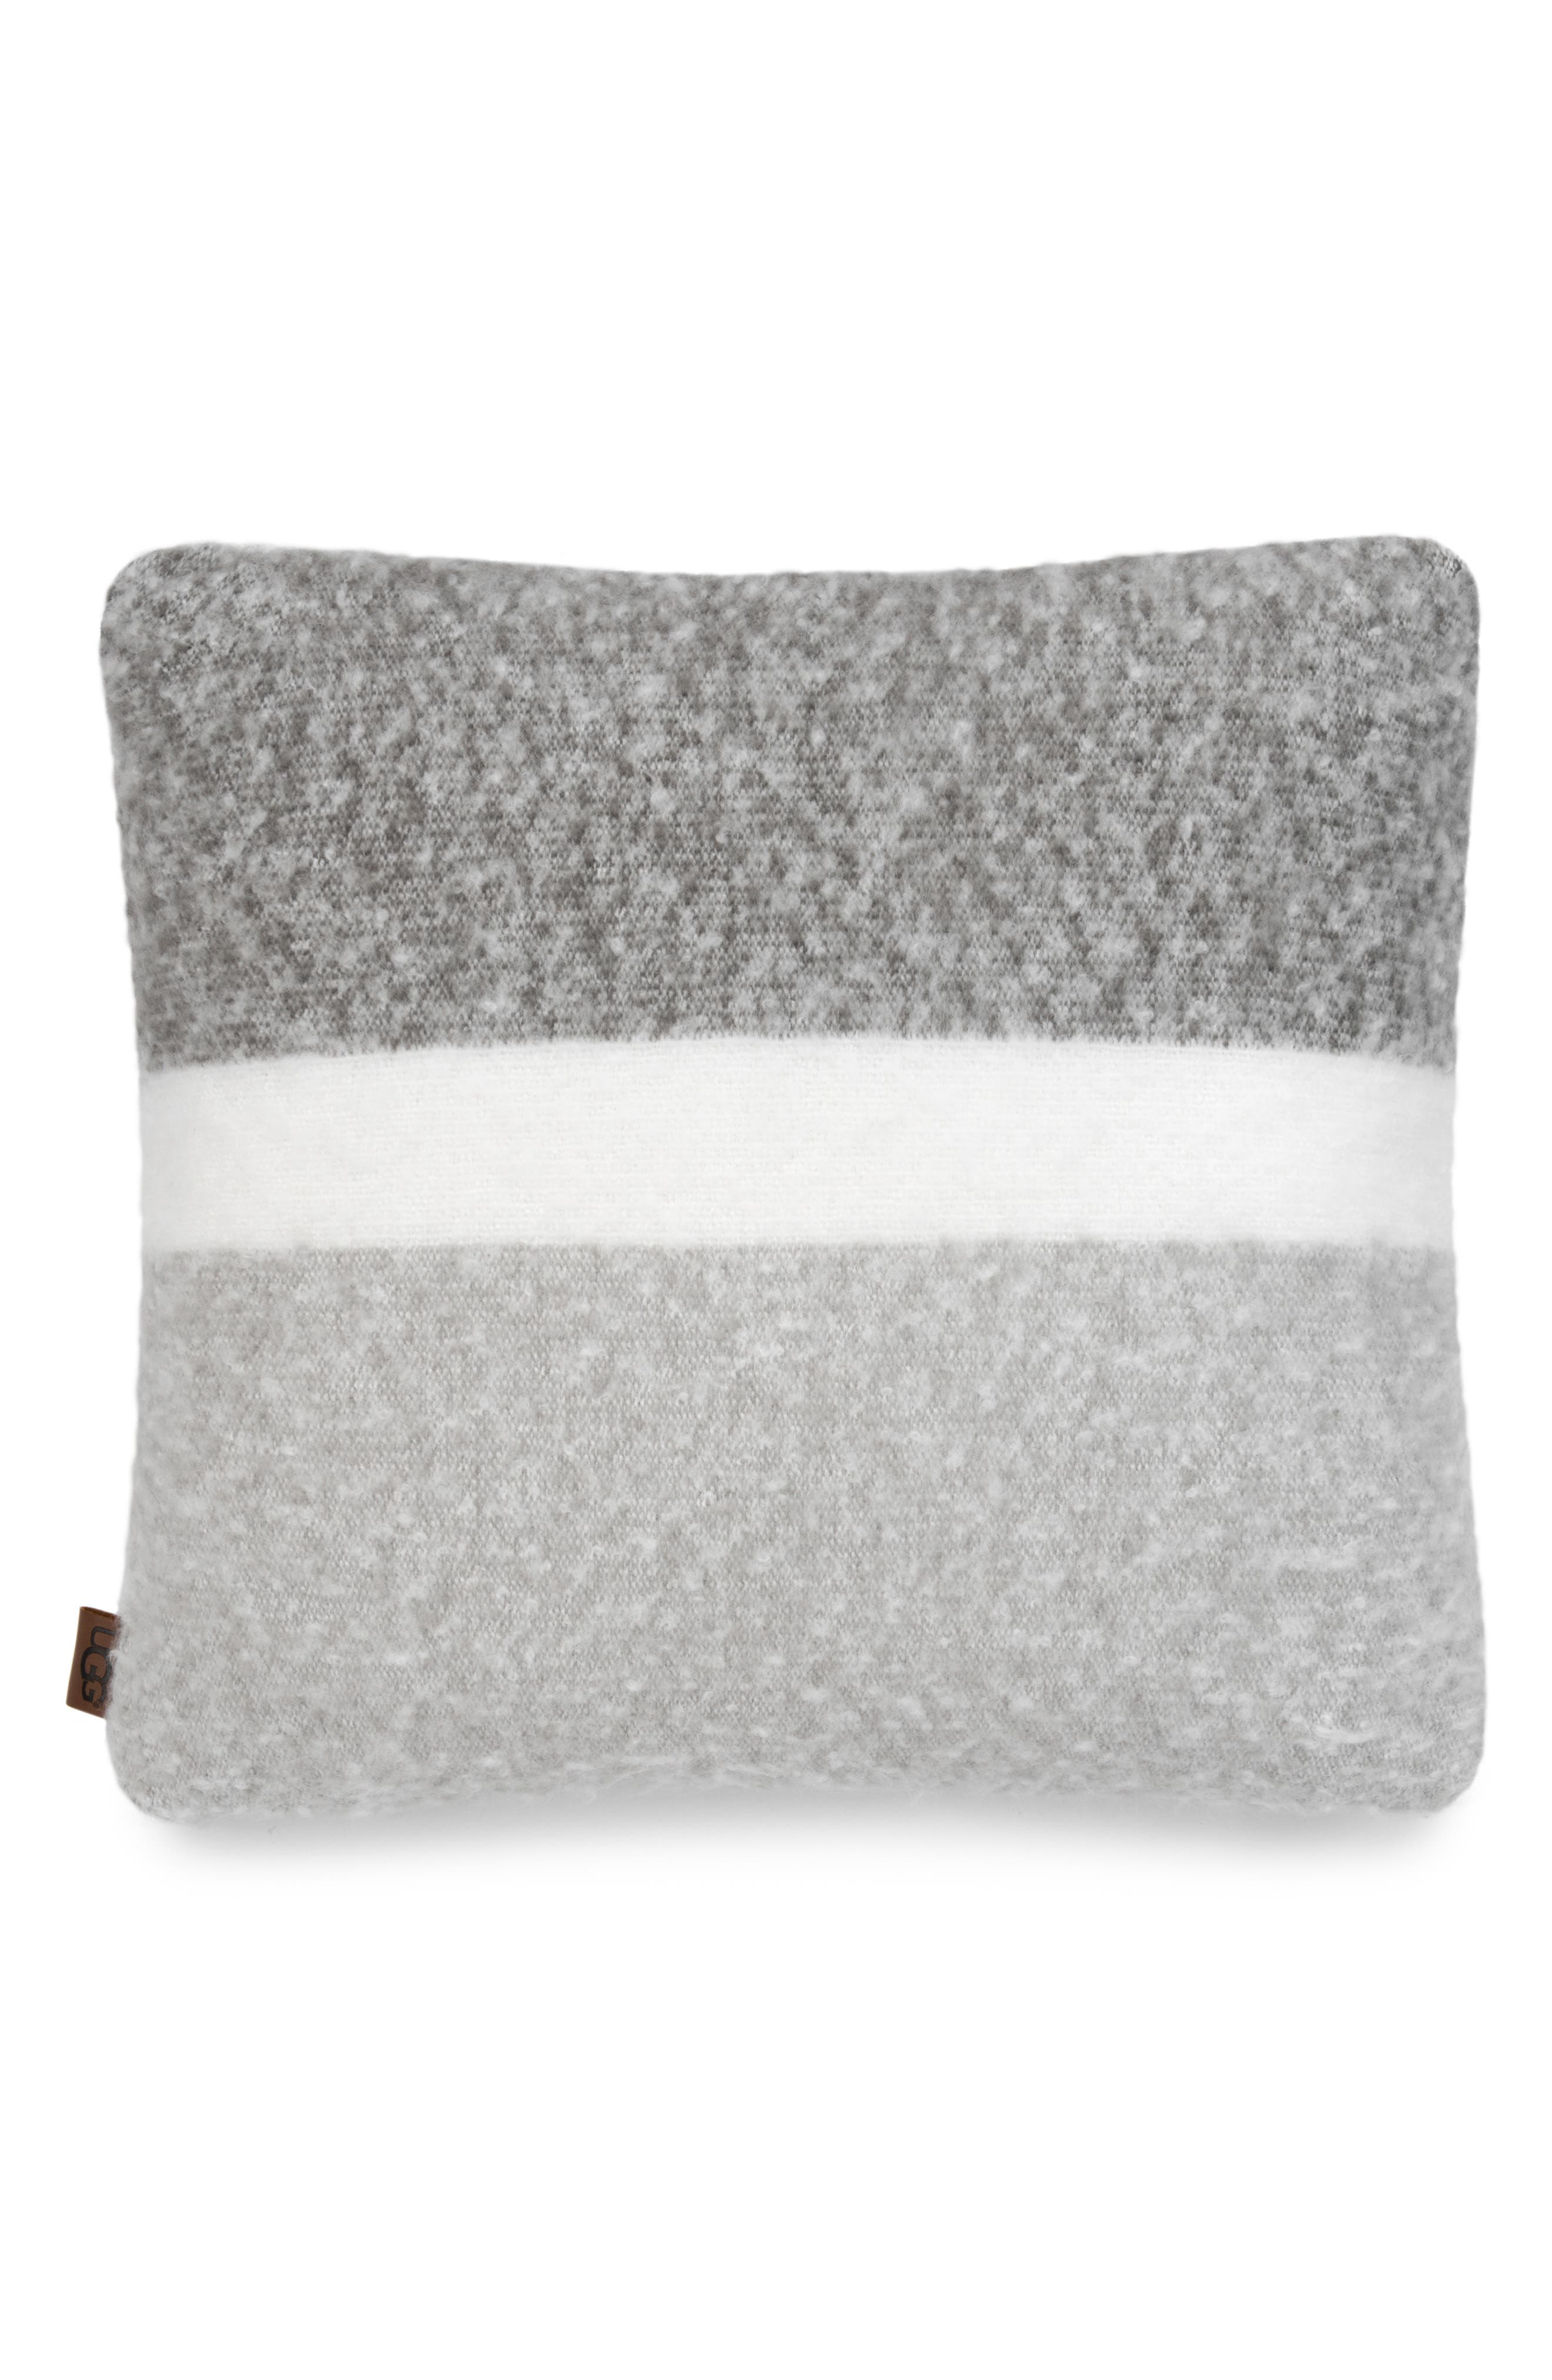 San Mateo Accent Pillow,                             Main thumbnail 1, color,                             GREY MULTI